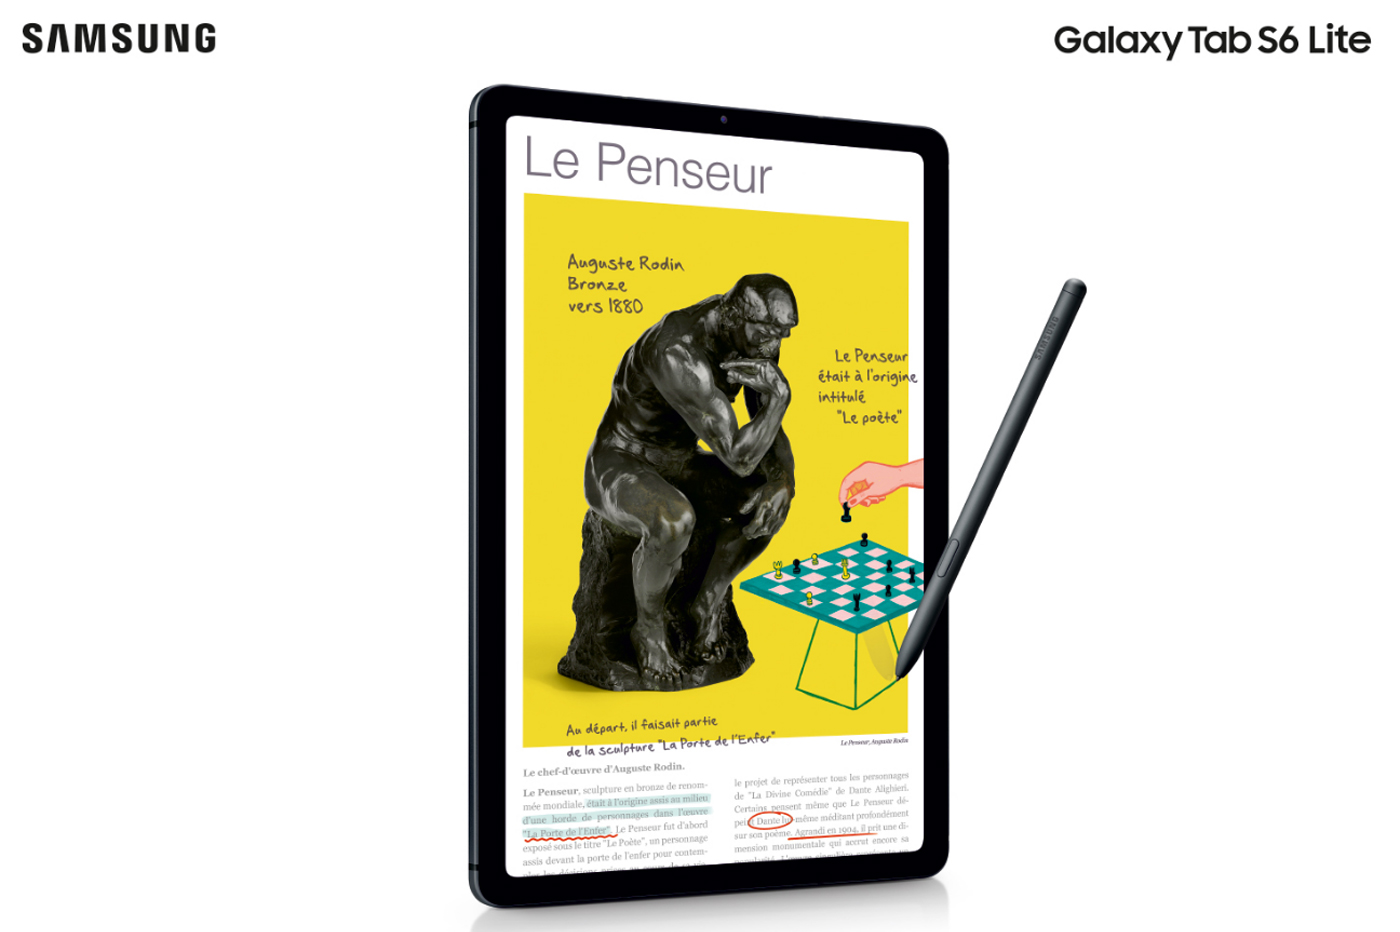 Samsung Galaxy Tab S6 Lite Android